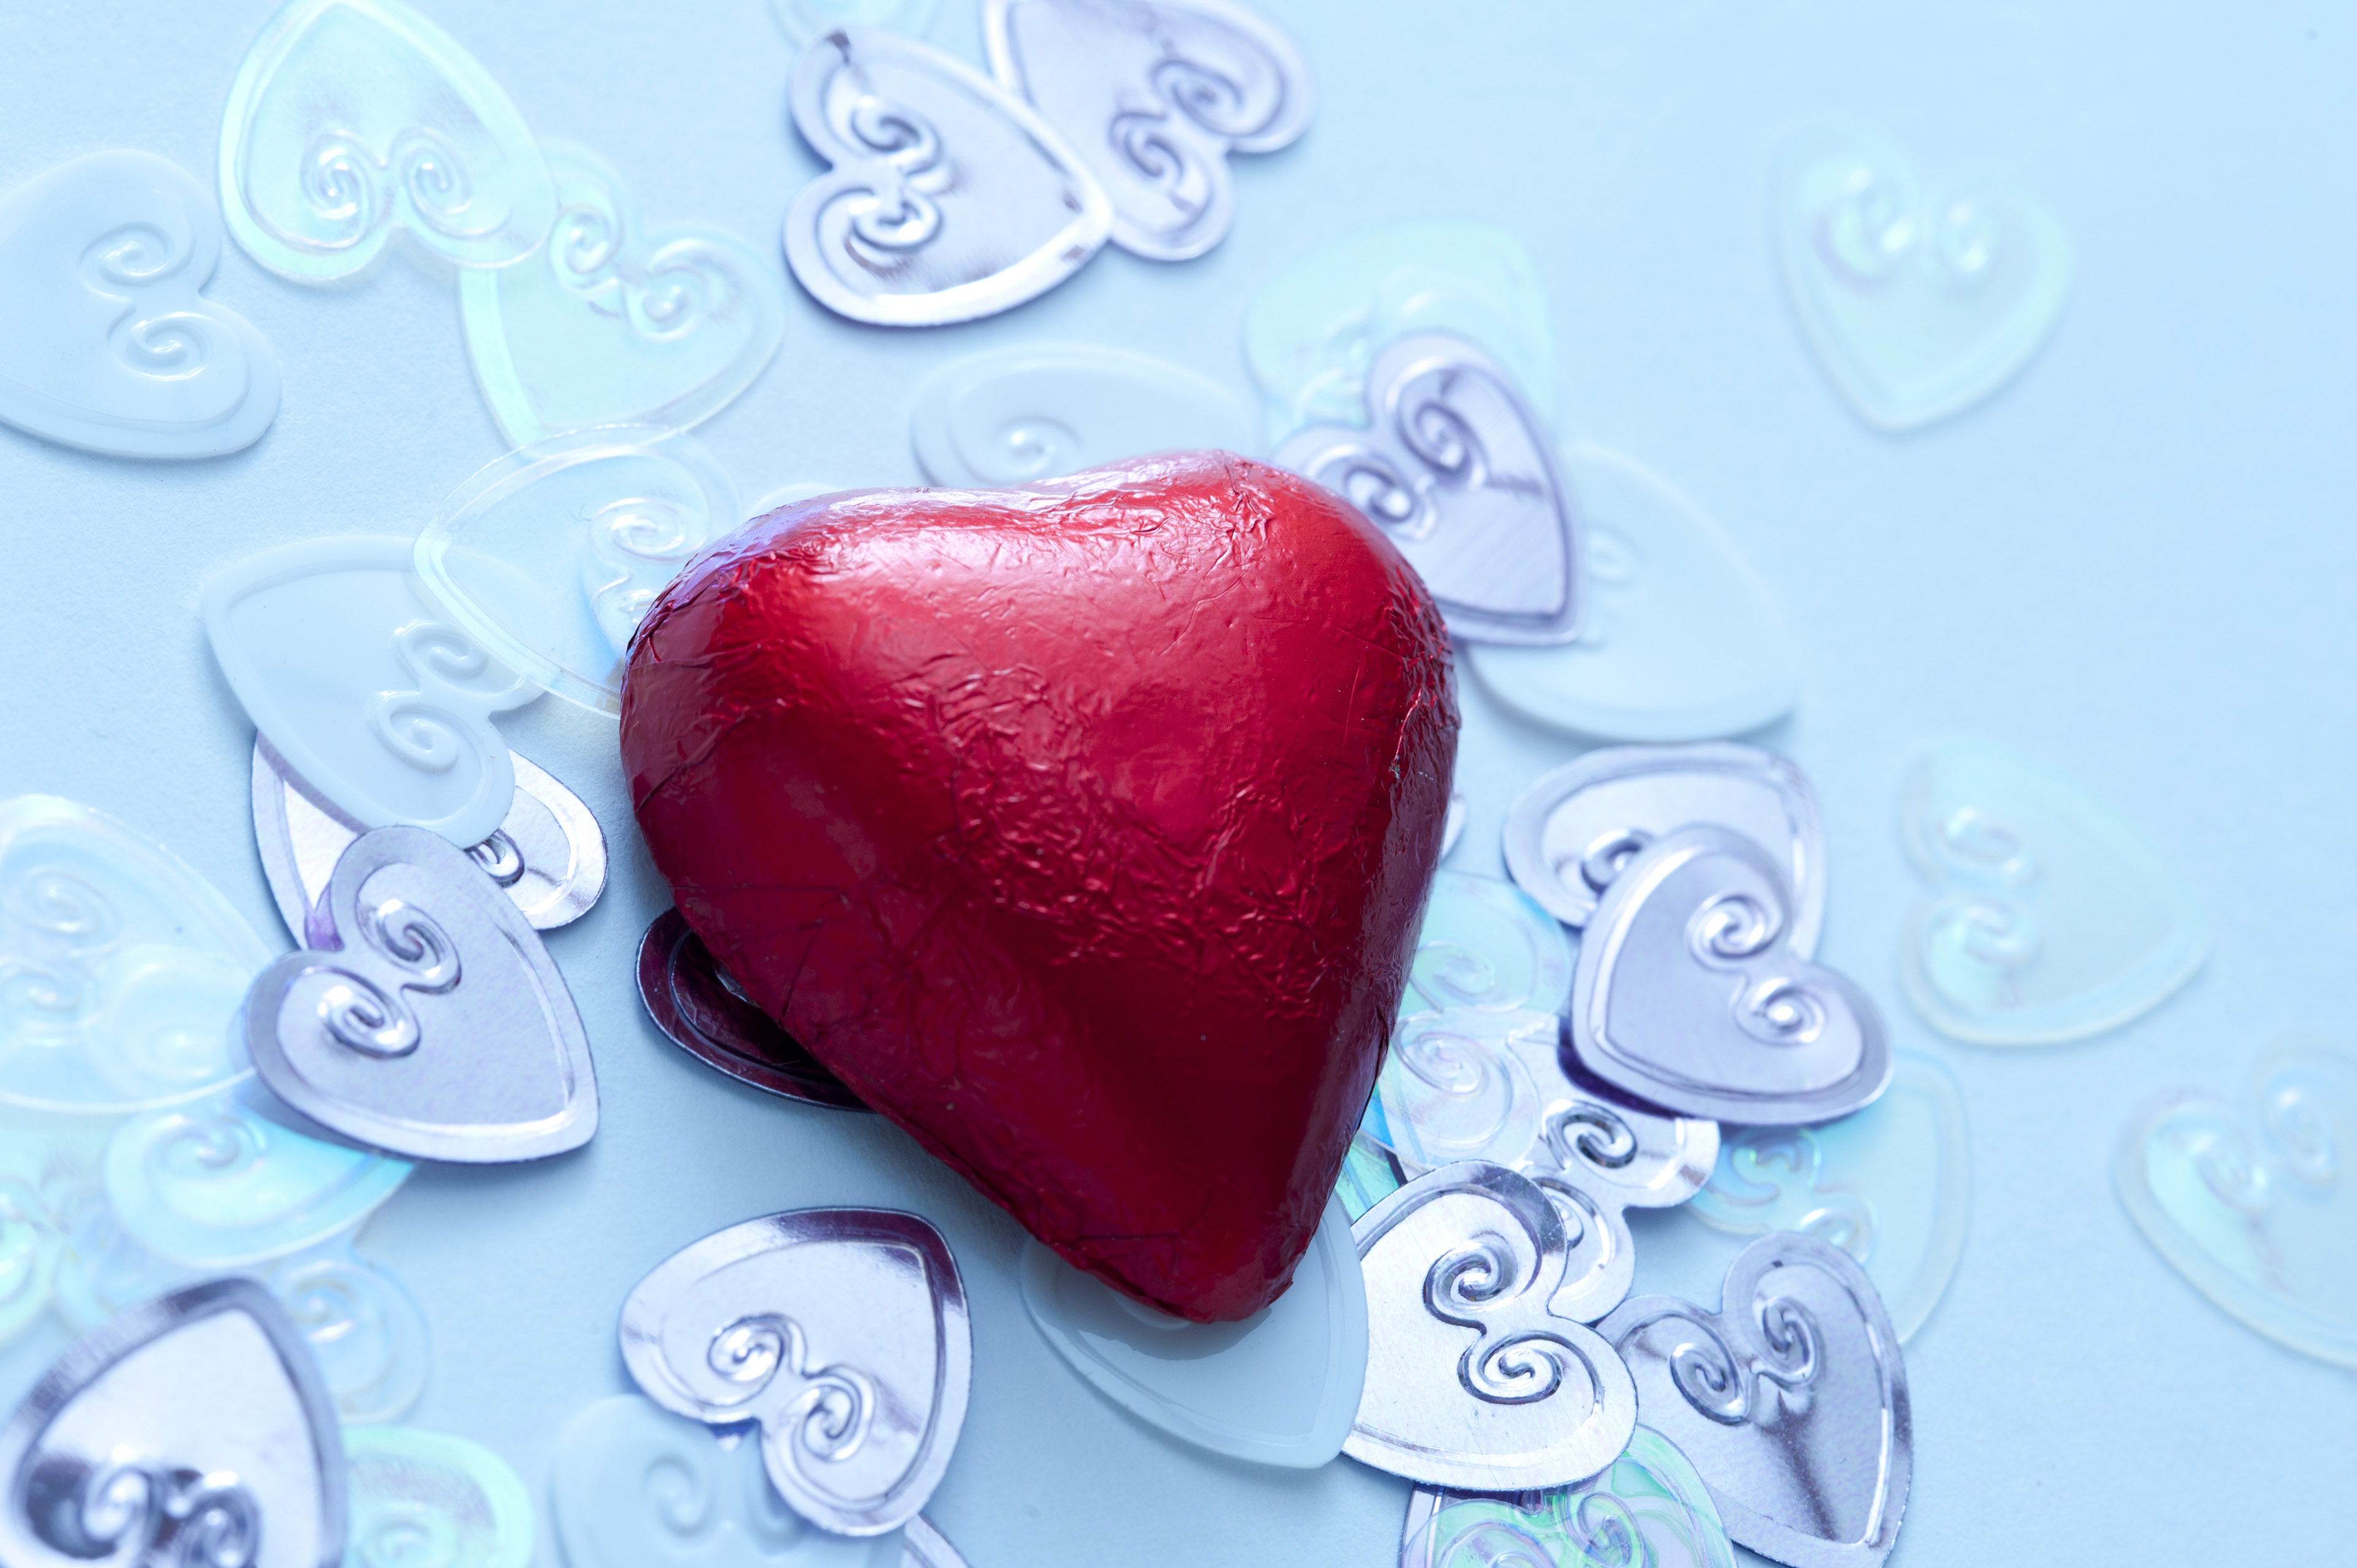 A single, red valentine chocolate on metallic wedding heart confetti decorations.